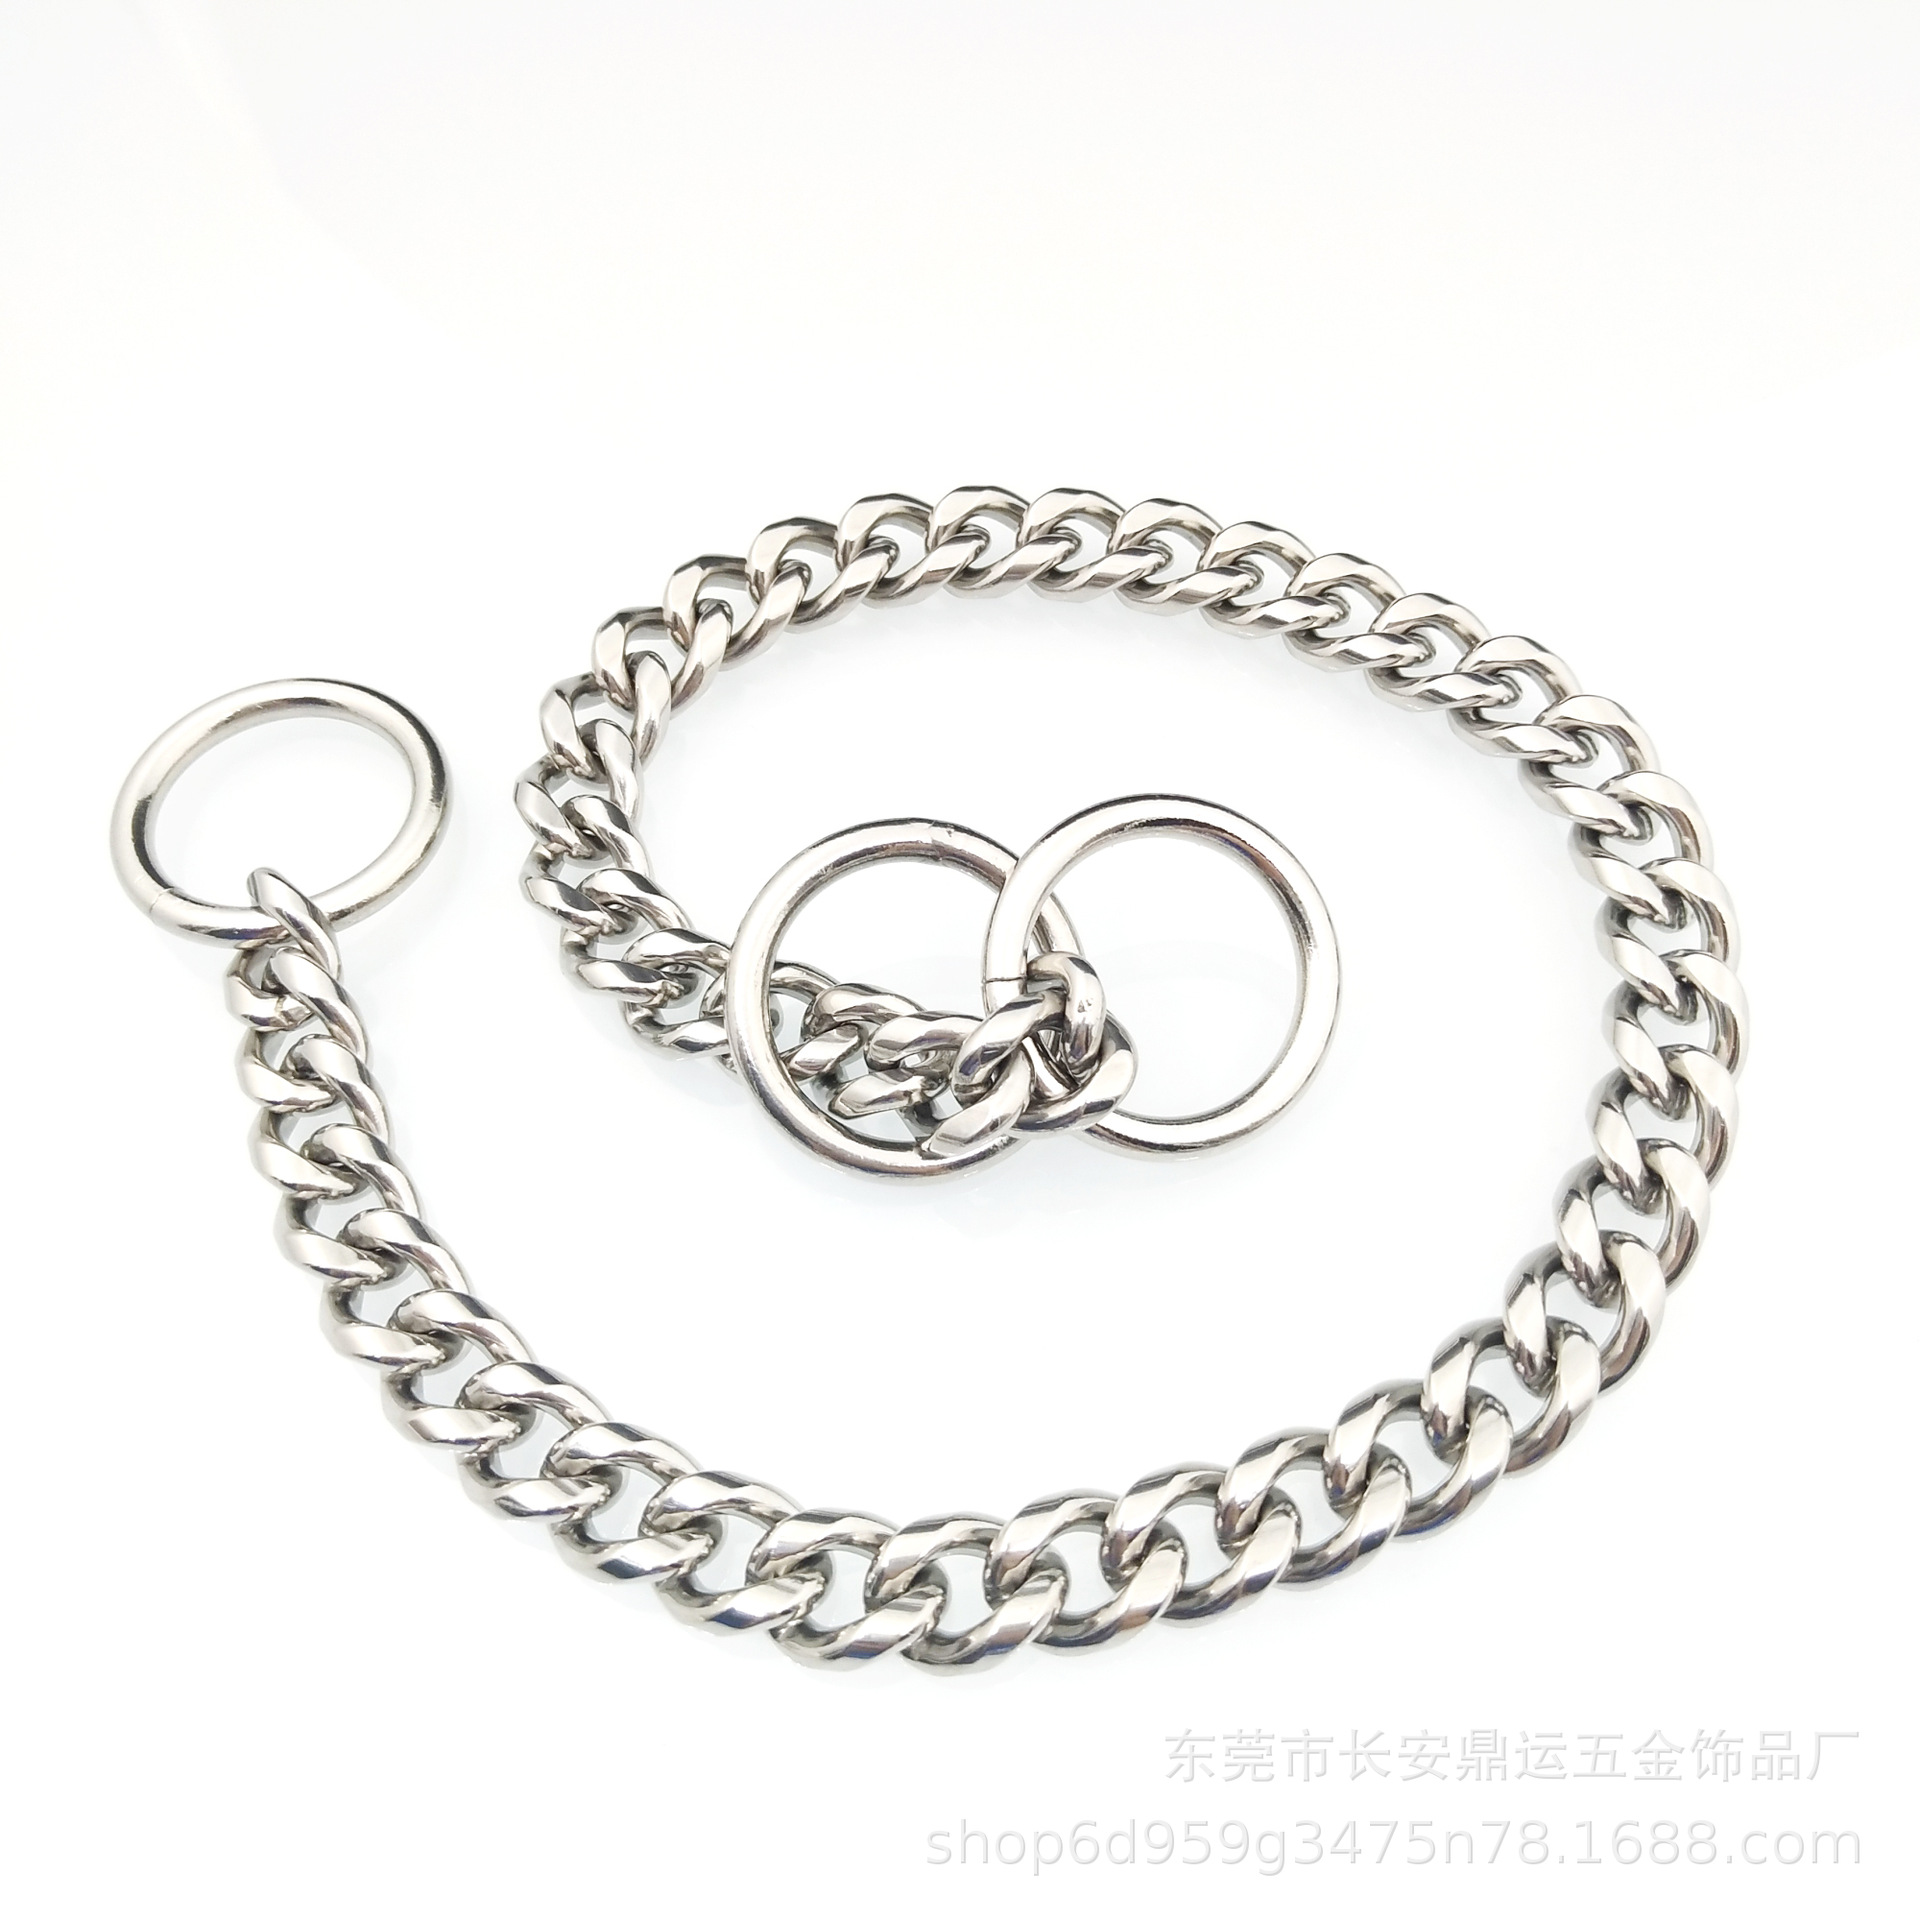 Hot Selling Pet Useful Product Golden Retriever Rottweiler Dog Chain Stainless Steel Dog Collar 304